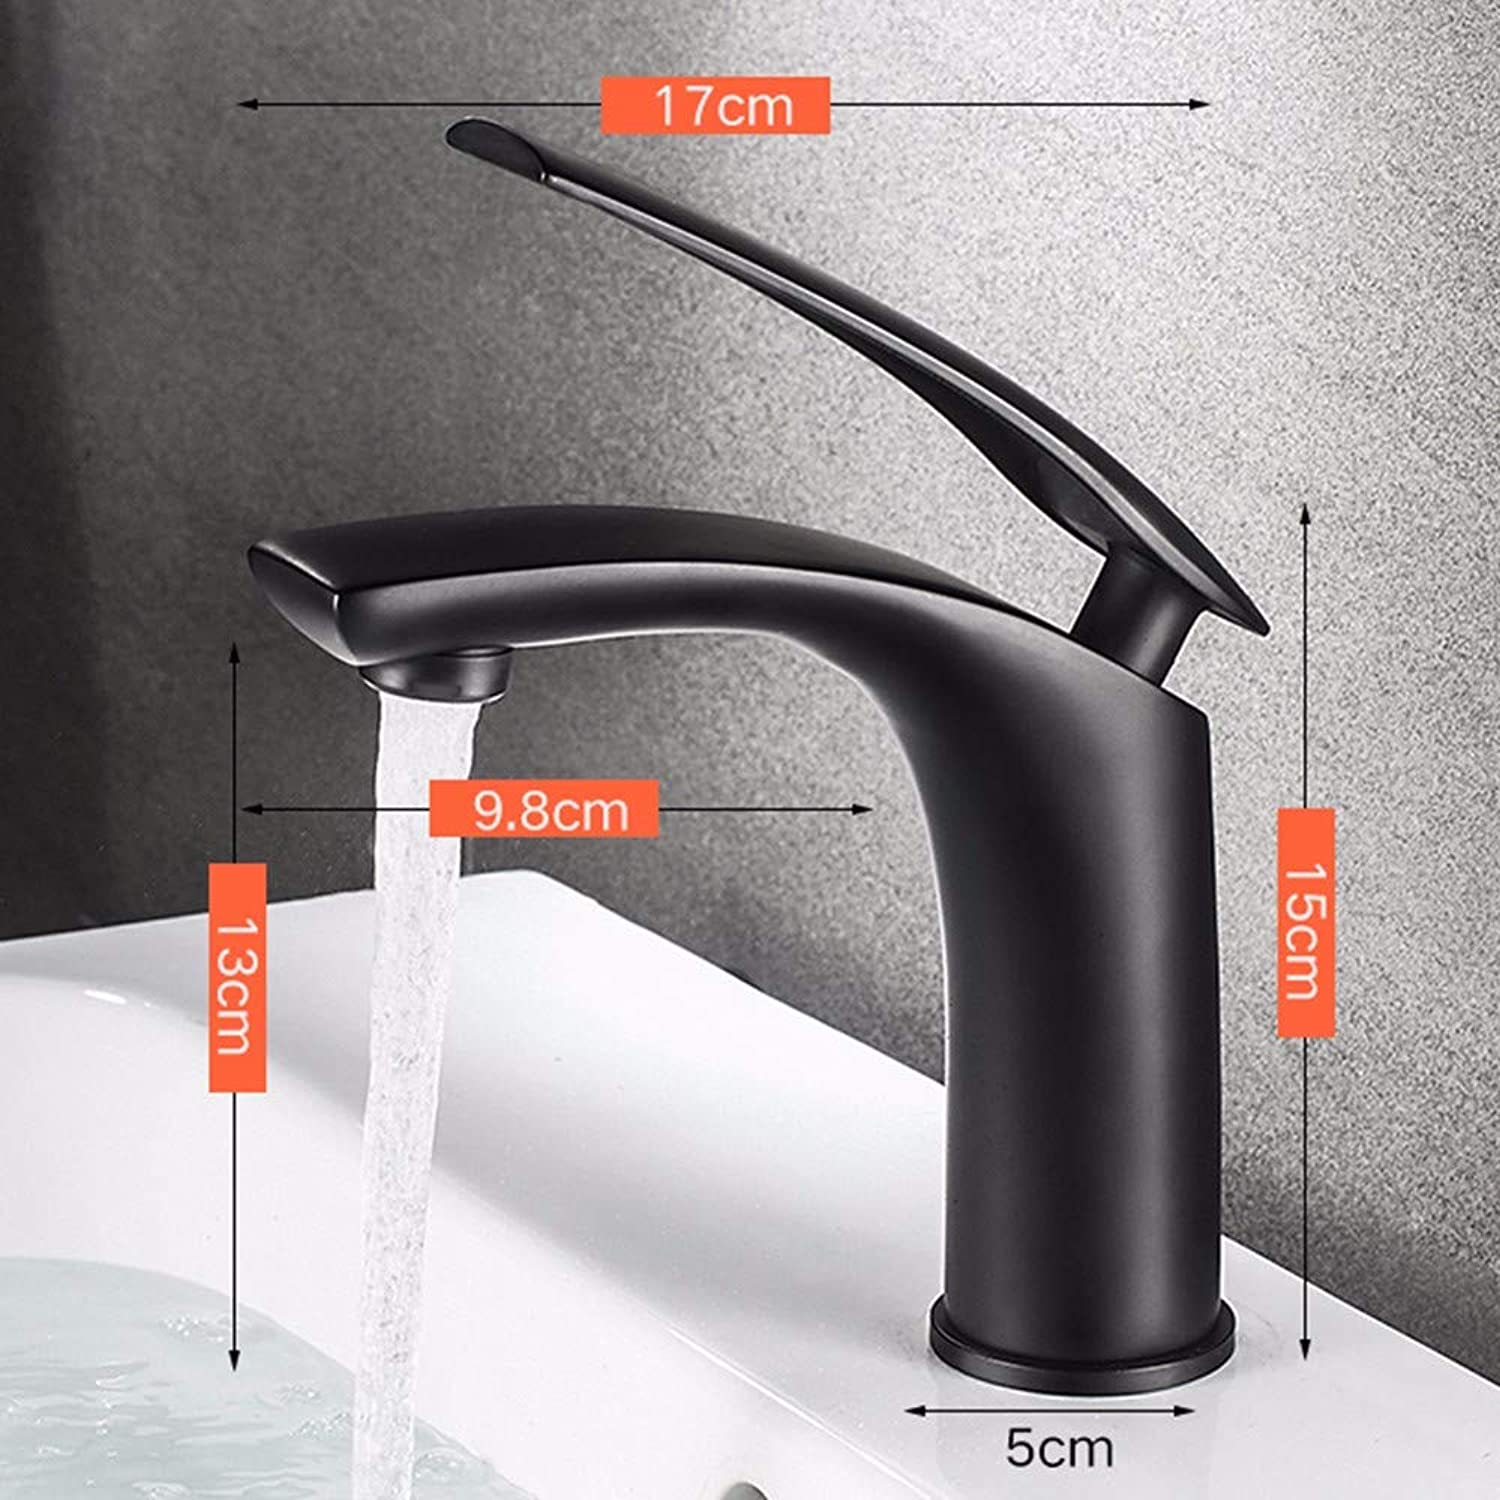 Bathroom taps Cascade Type Copper Table, Basin, washbasin, Basin, taps, Bathroom Cabinet, Bathroom, Single-Hole taps,Black,15cm